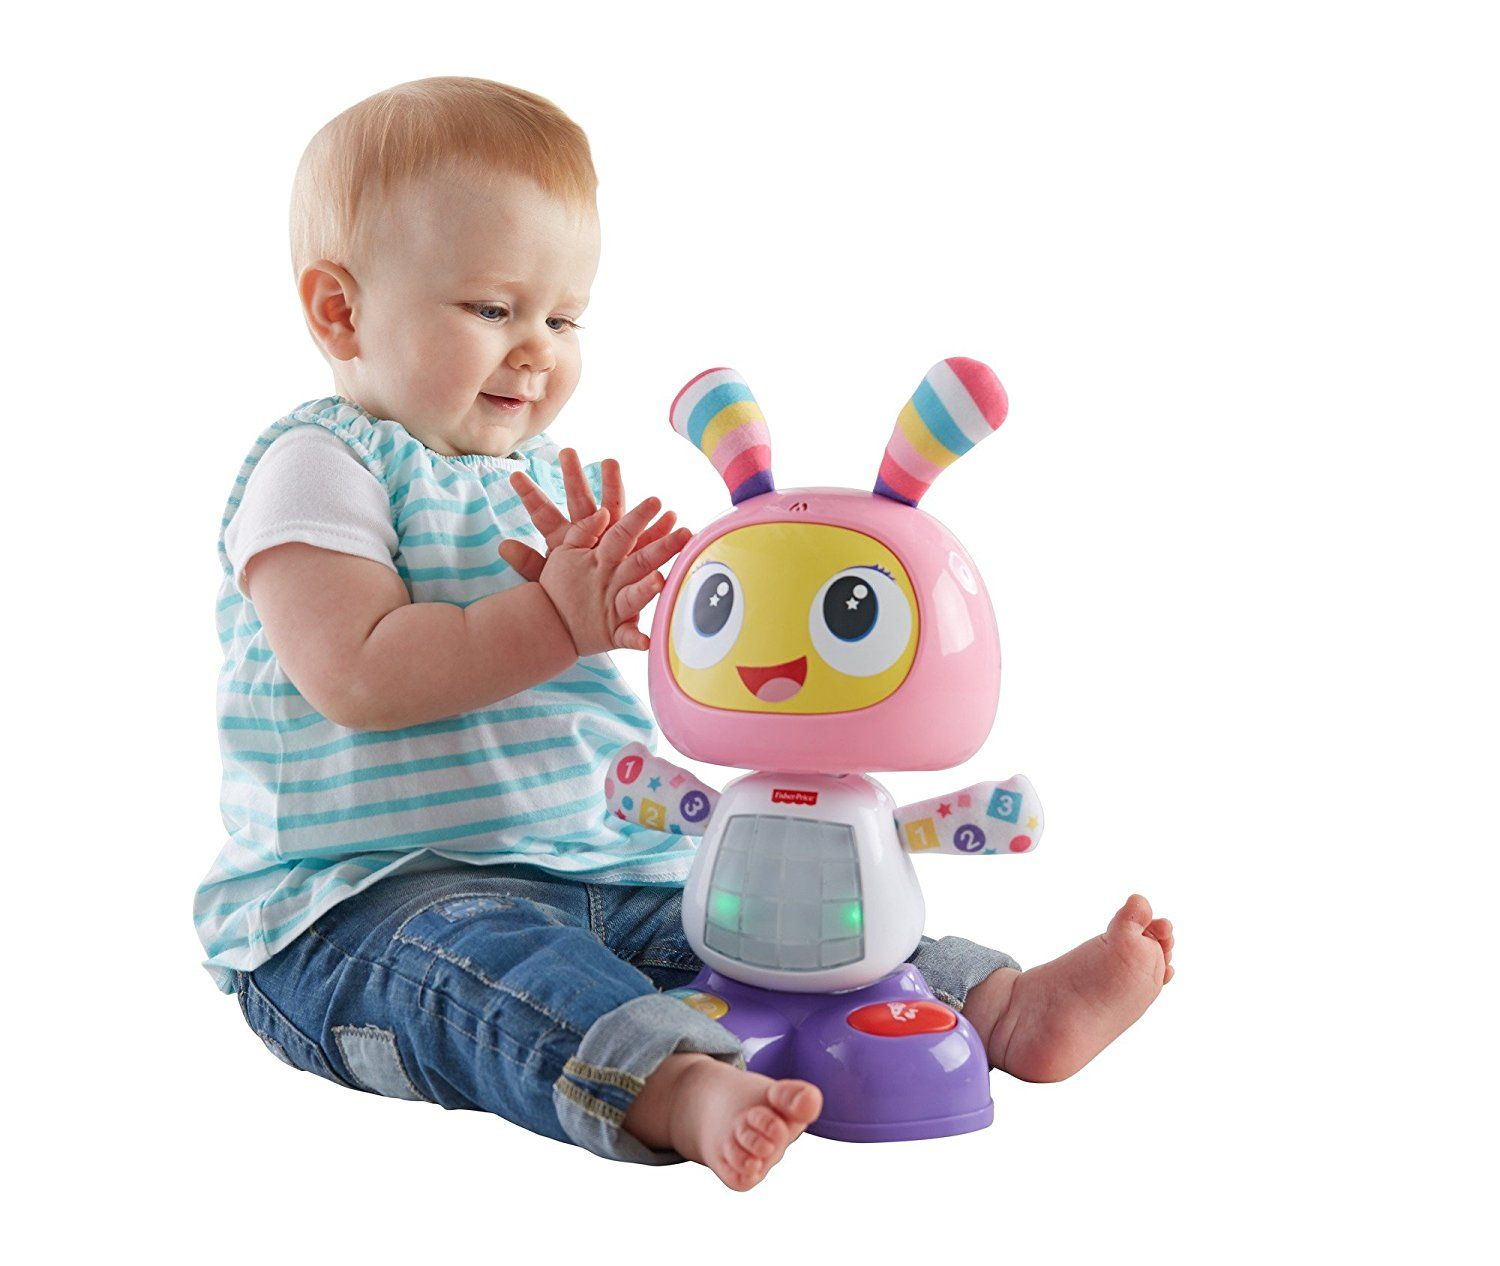 Babies Interactive Toys Bright Beats Dance And Move Beatbelle By Fisher Price